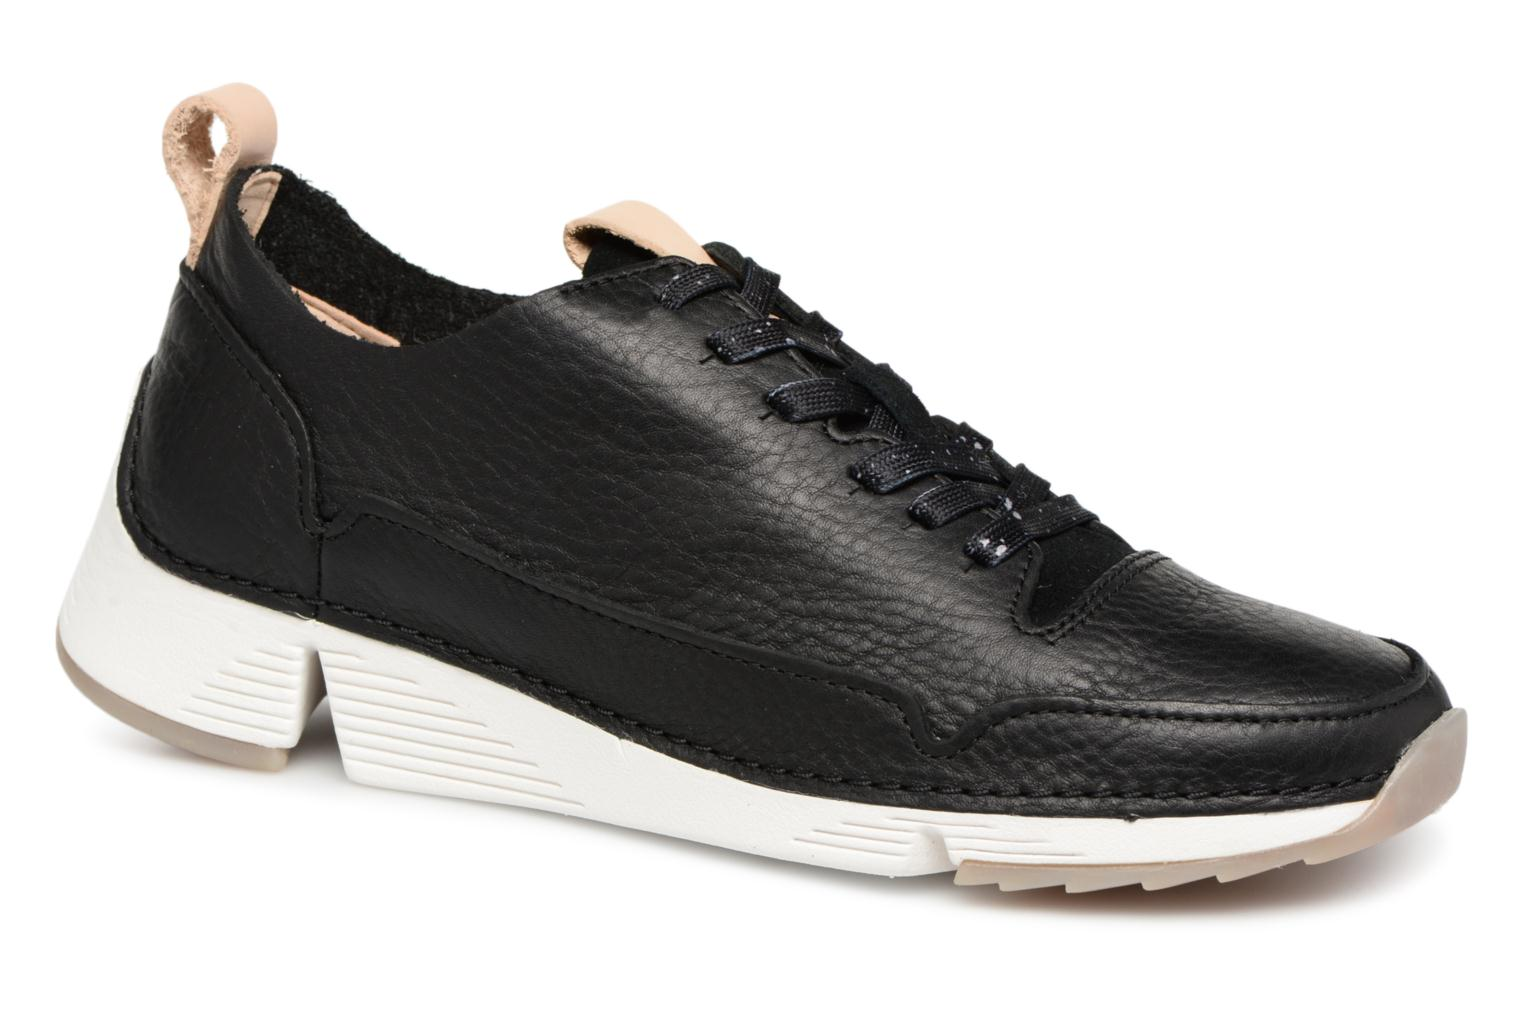 Clarks Trainers Tri Spark. (Black) - Trainers Clarks chez (340343) 283206